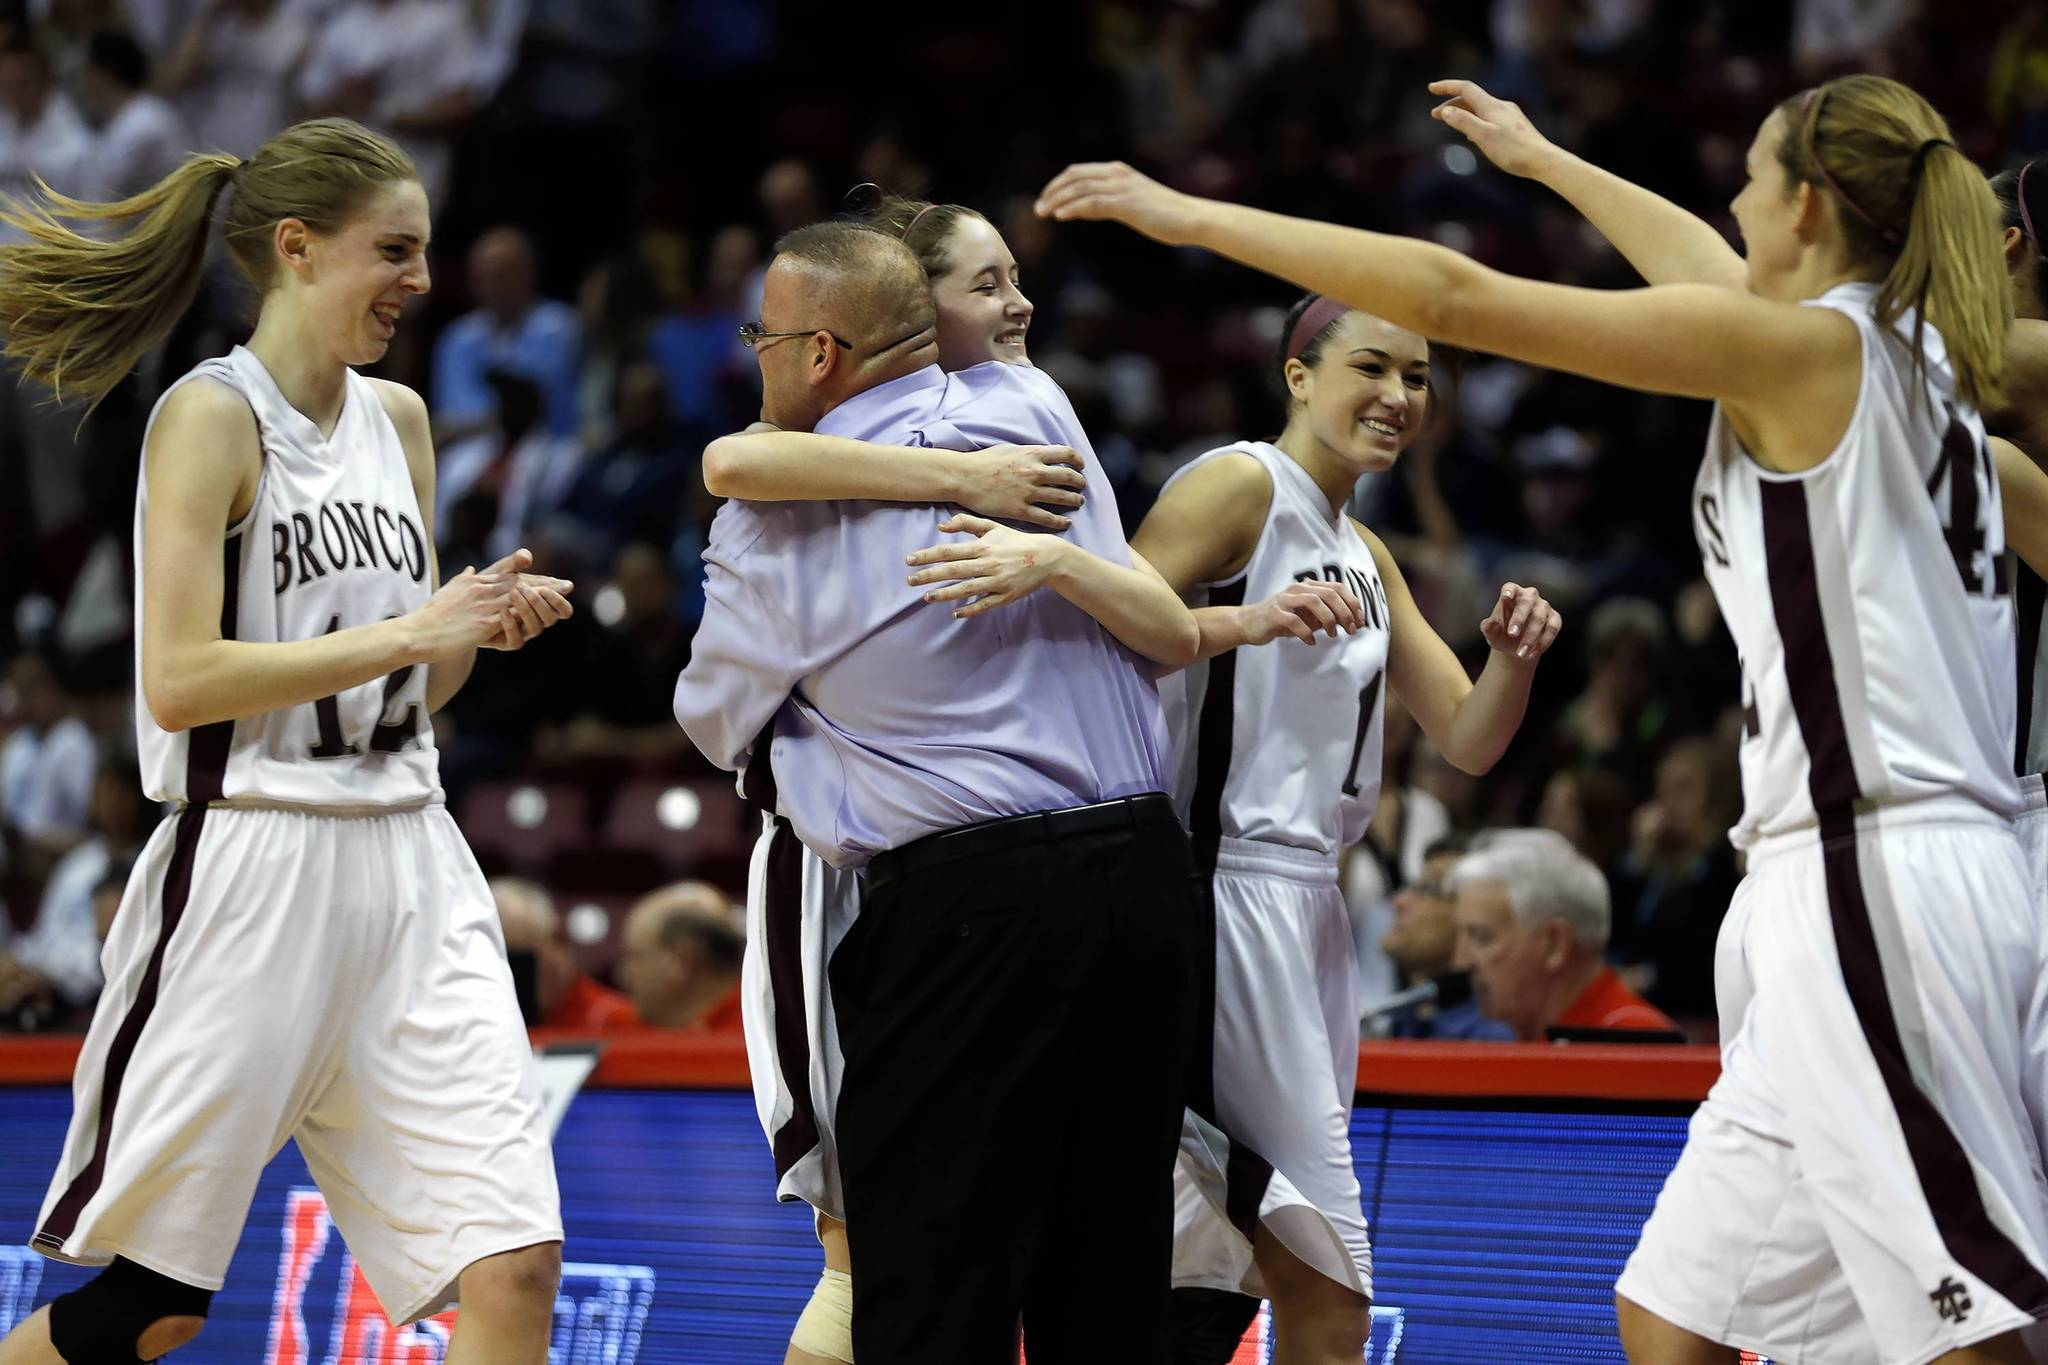 Montini's Kateri Stone hugs head coach Jason Nichols in the final minutes of their 57-44 win.